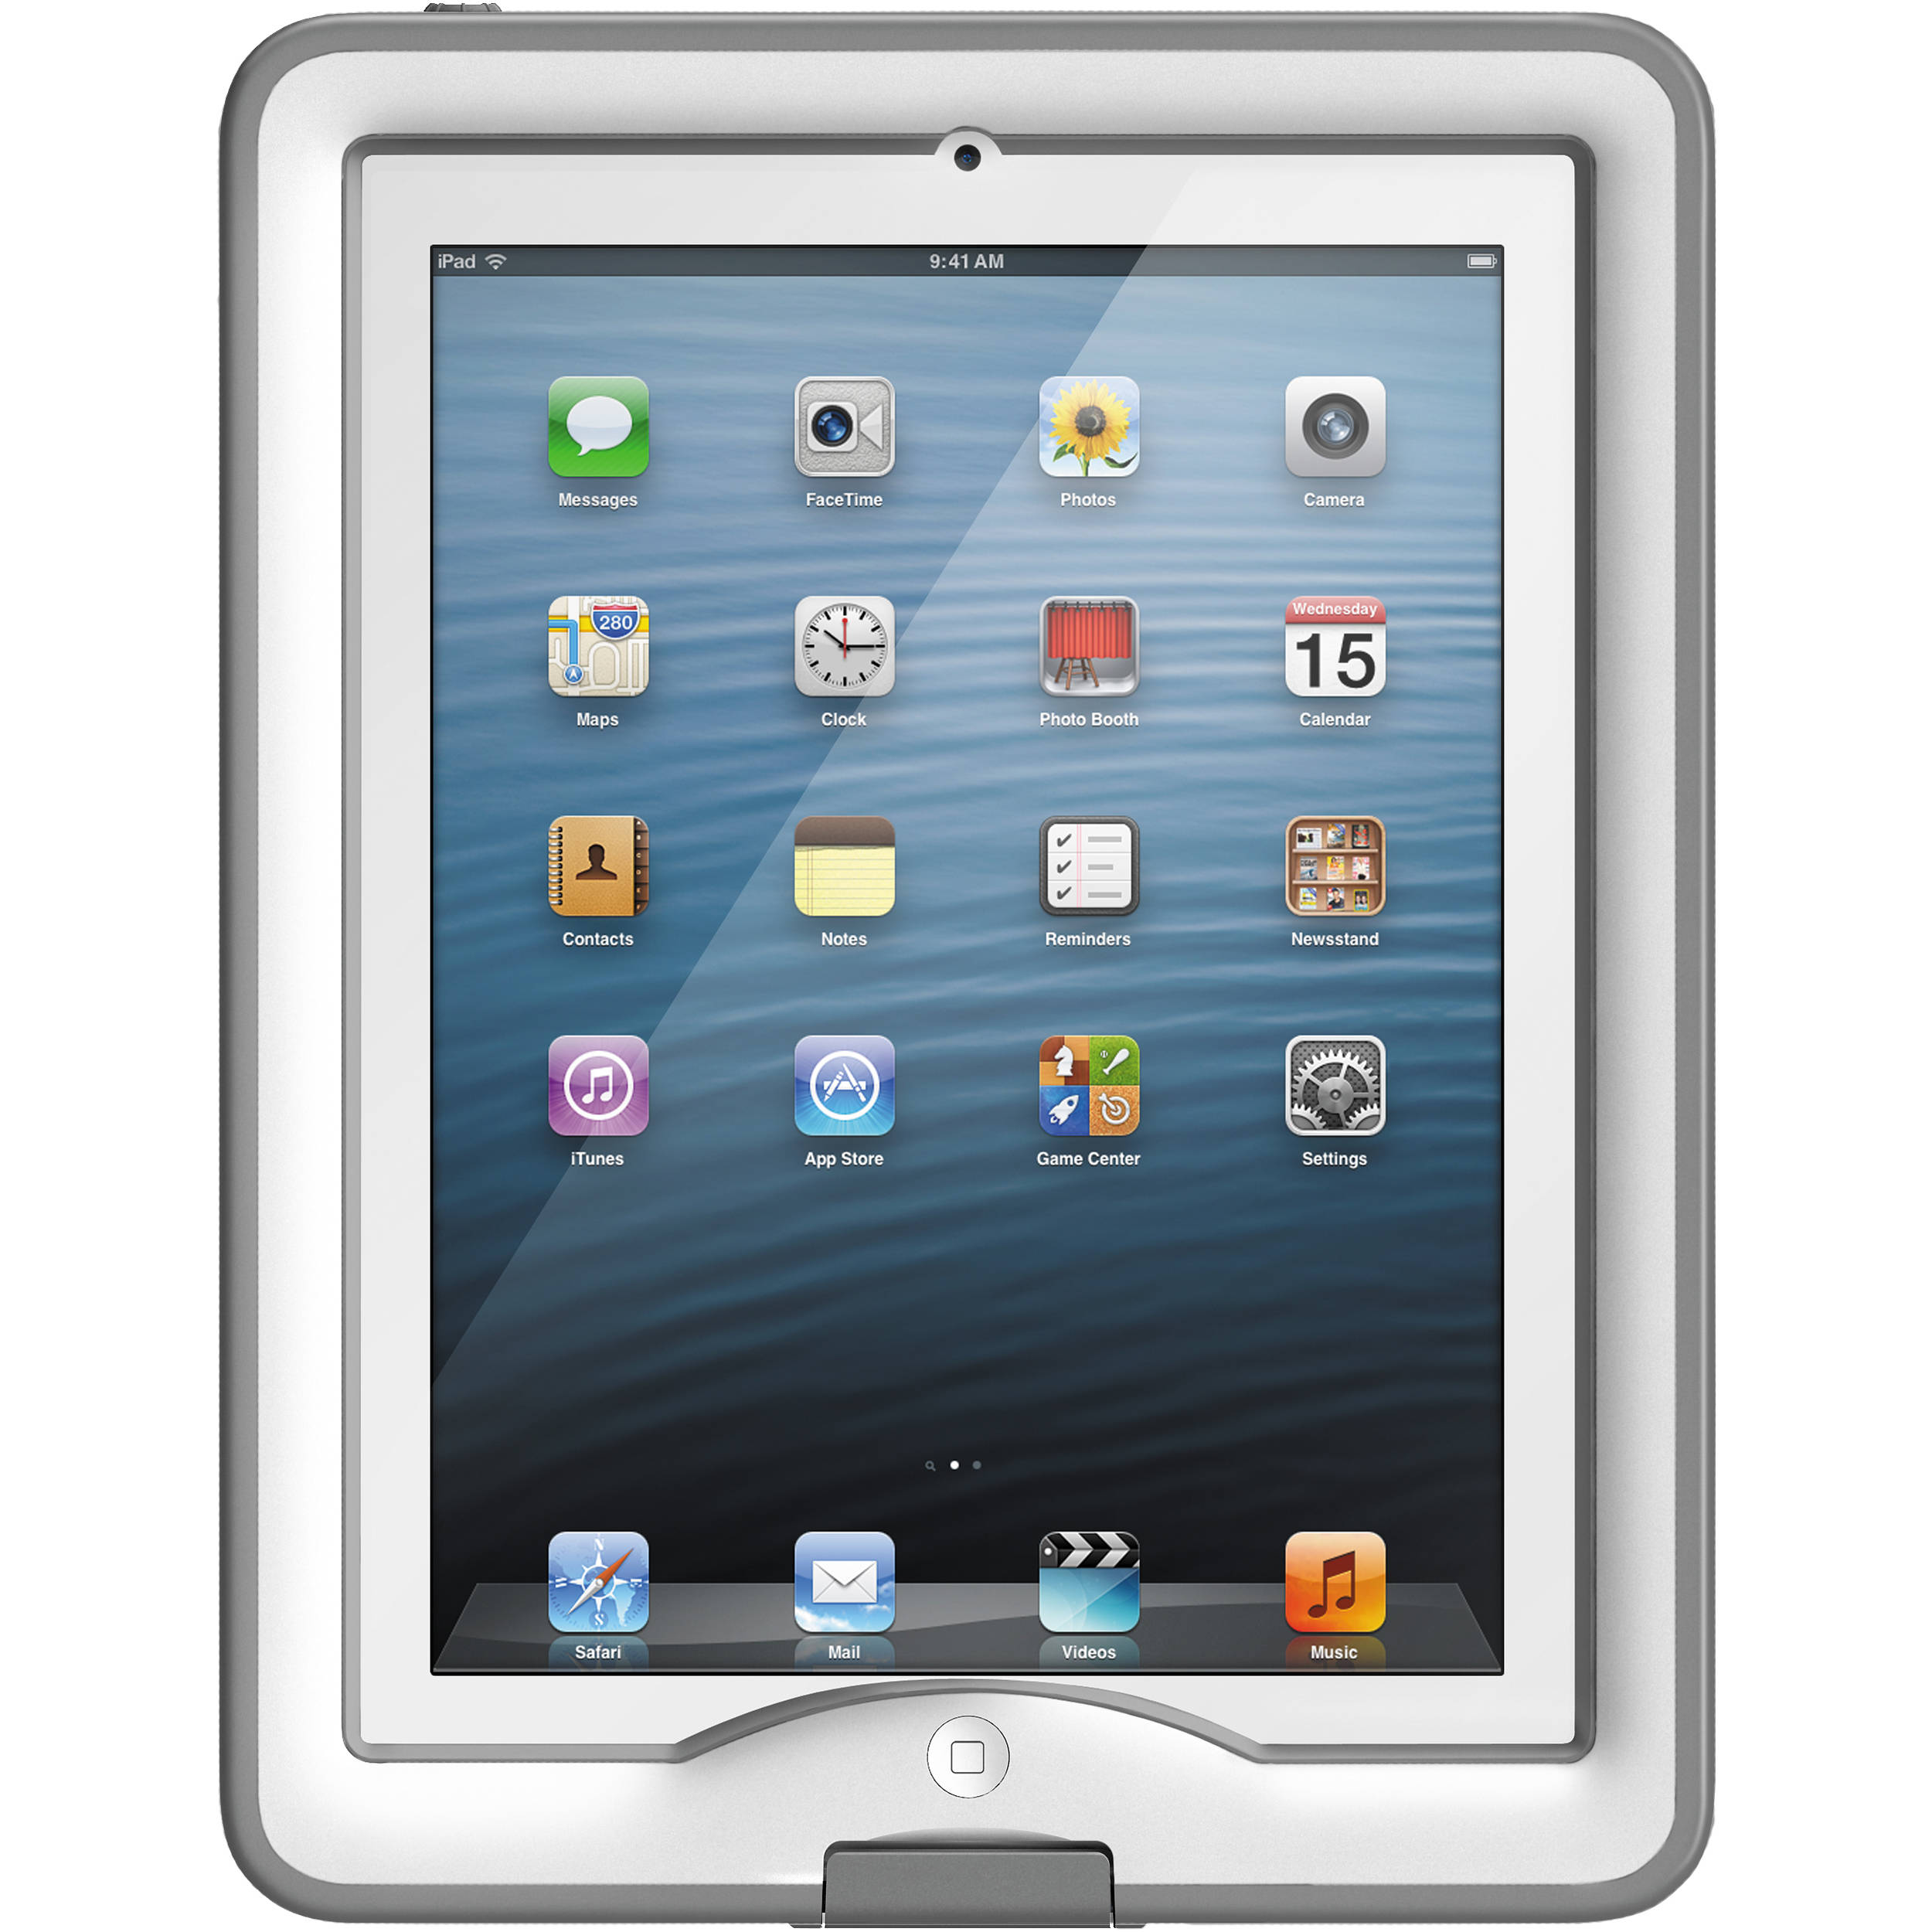 huge selection of e8c12 deb22 LifeProof nüüd Case for iPad Air (White/Gray)